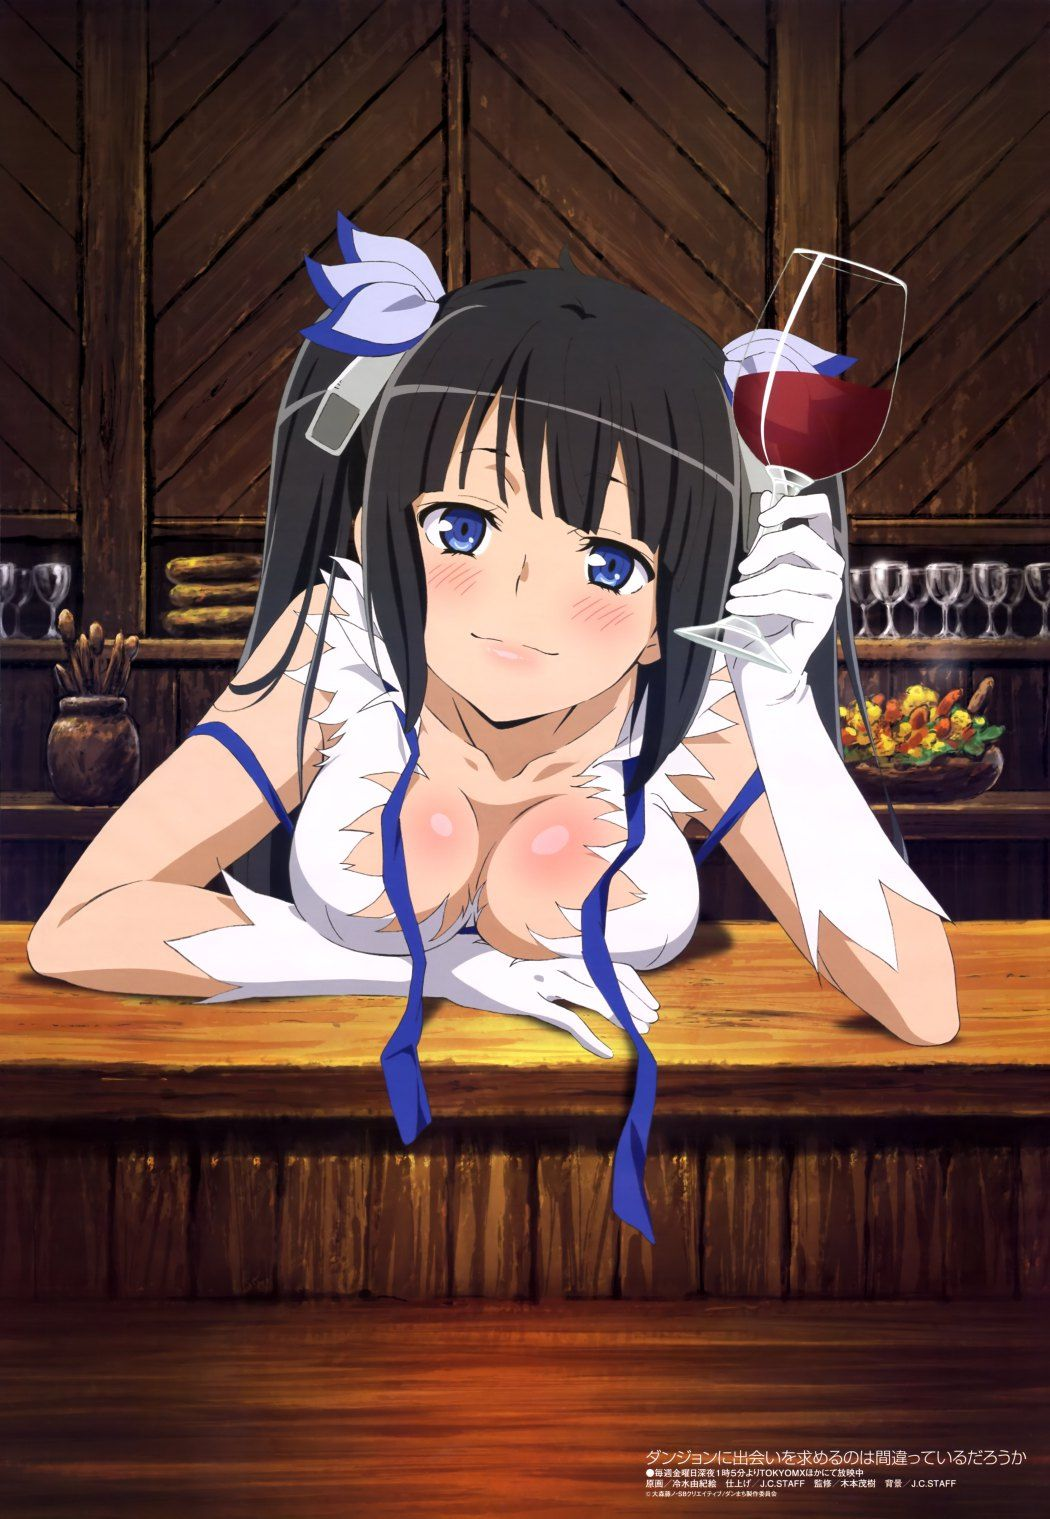 Danmachi S Hestia Poster Visuals Are Very Seductive Nyantype